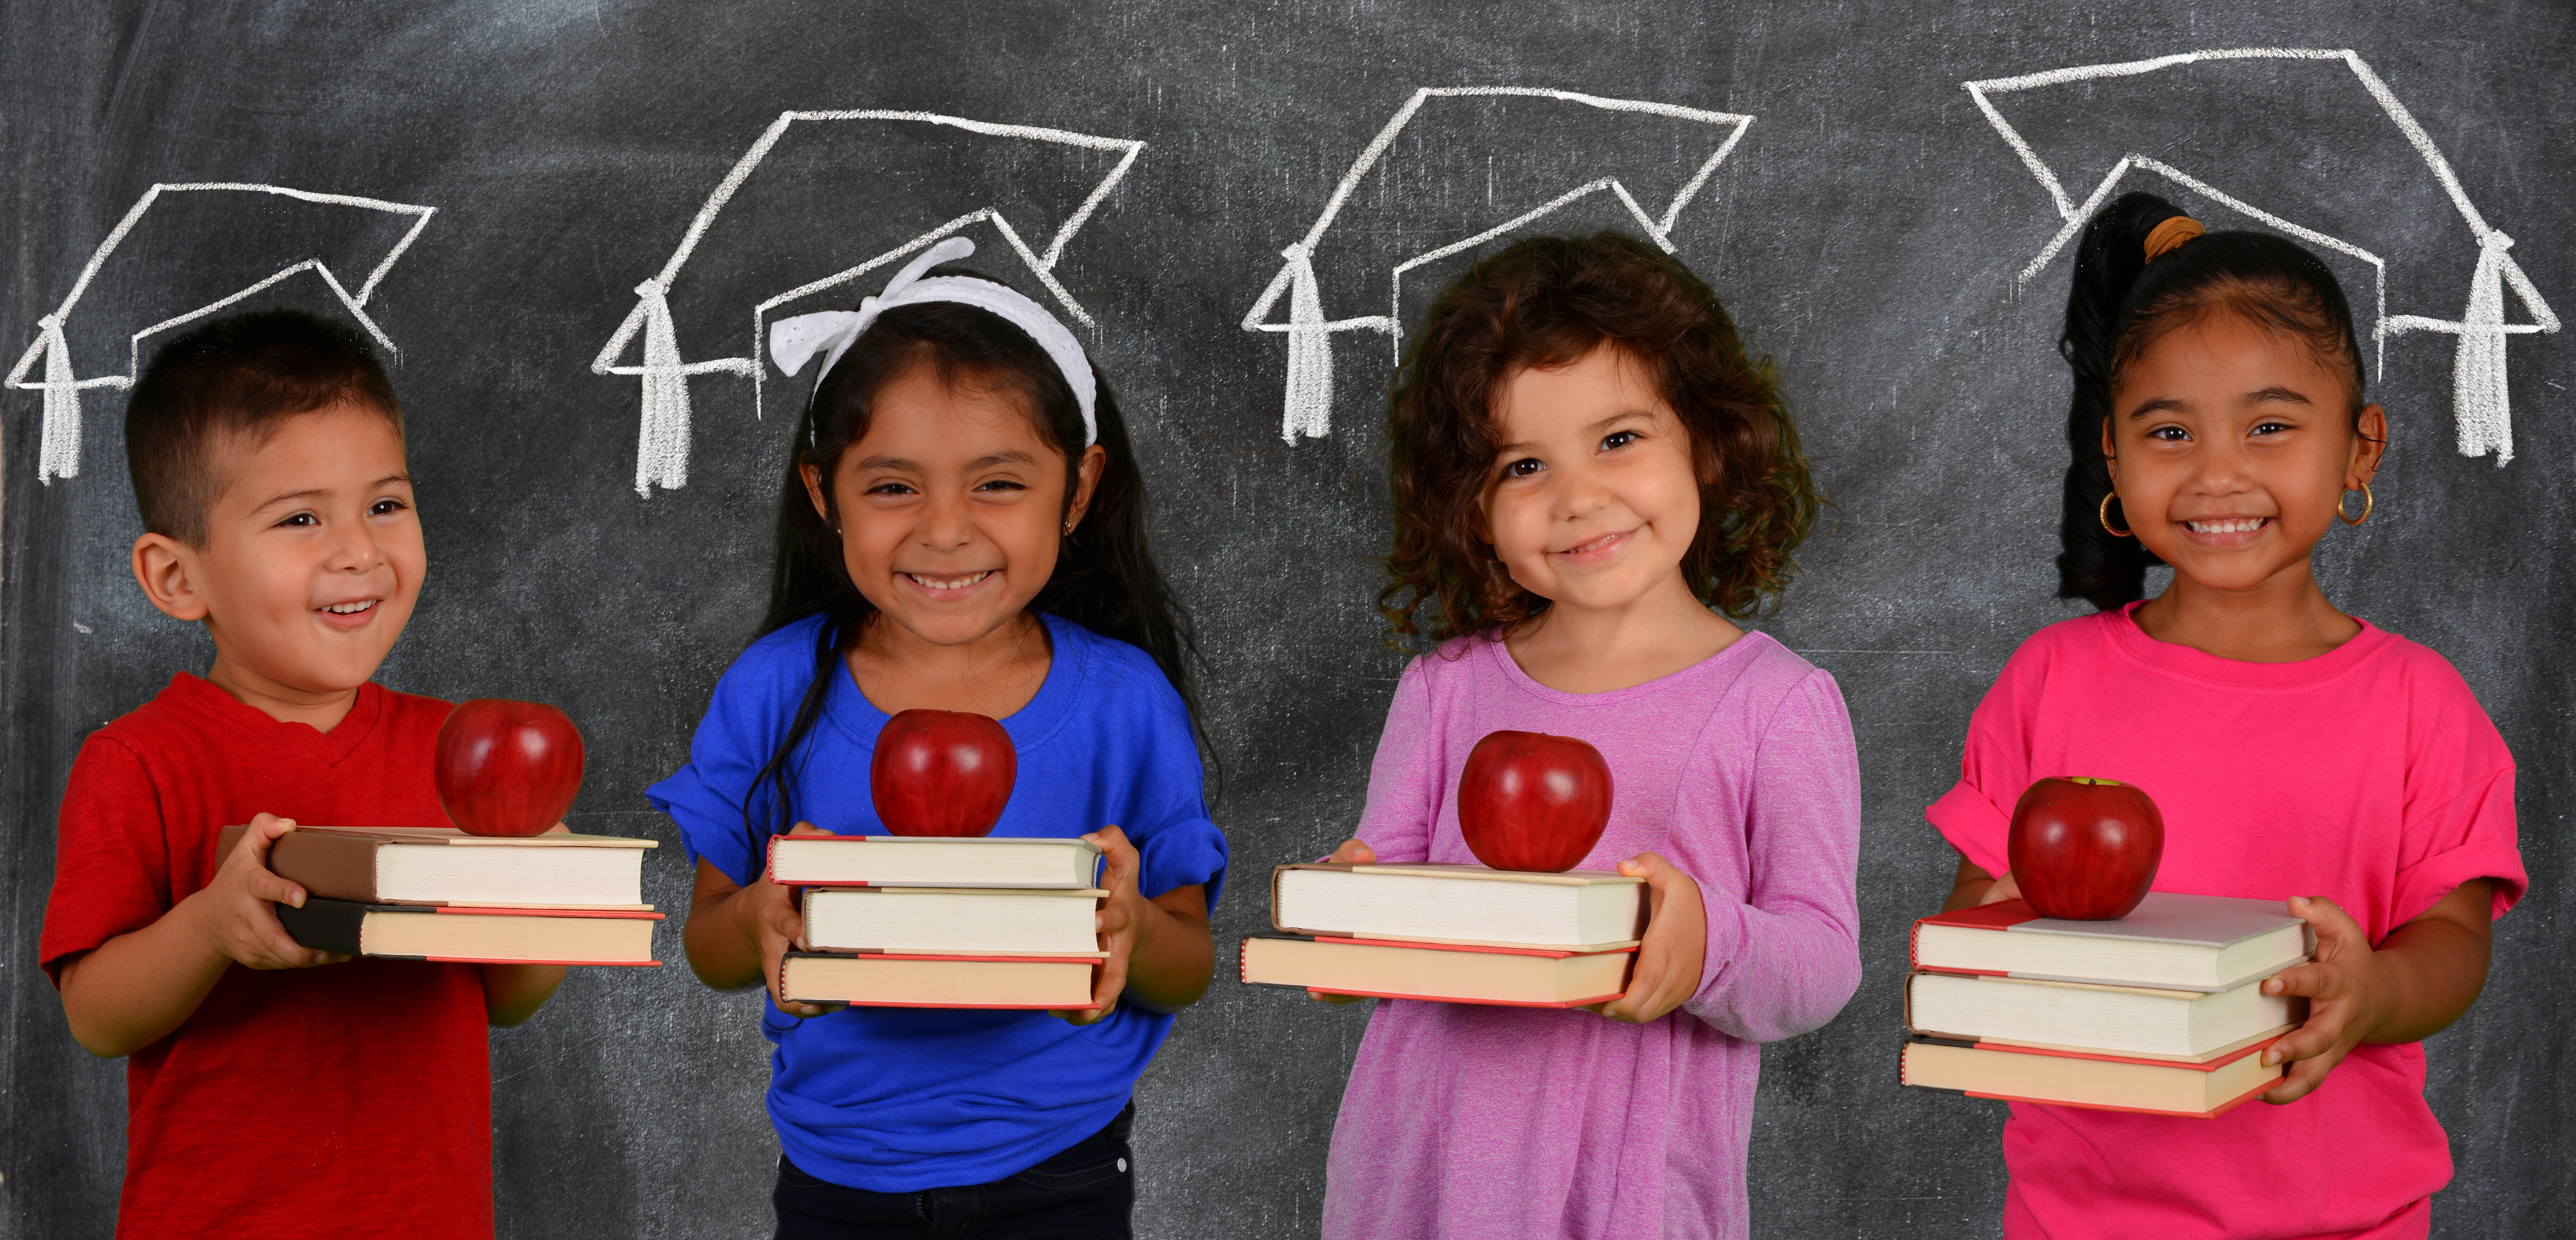 preschool education in the united states essay